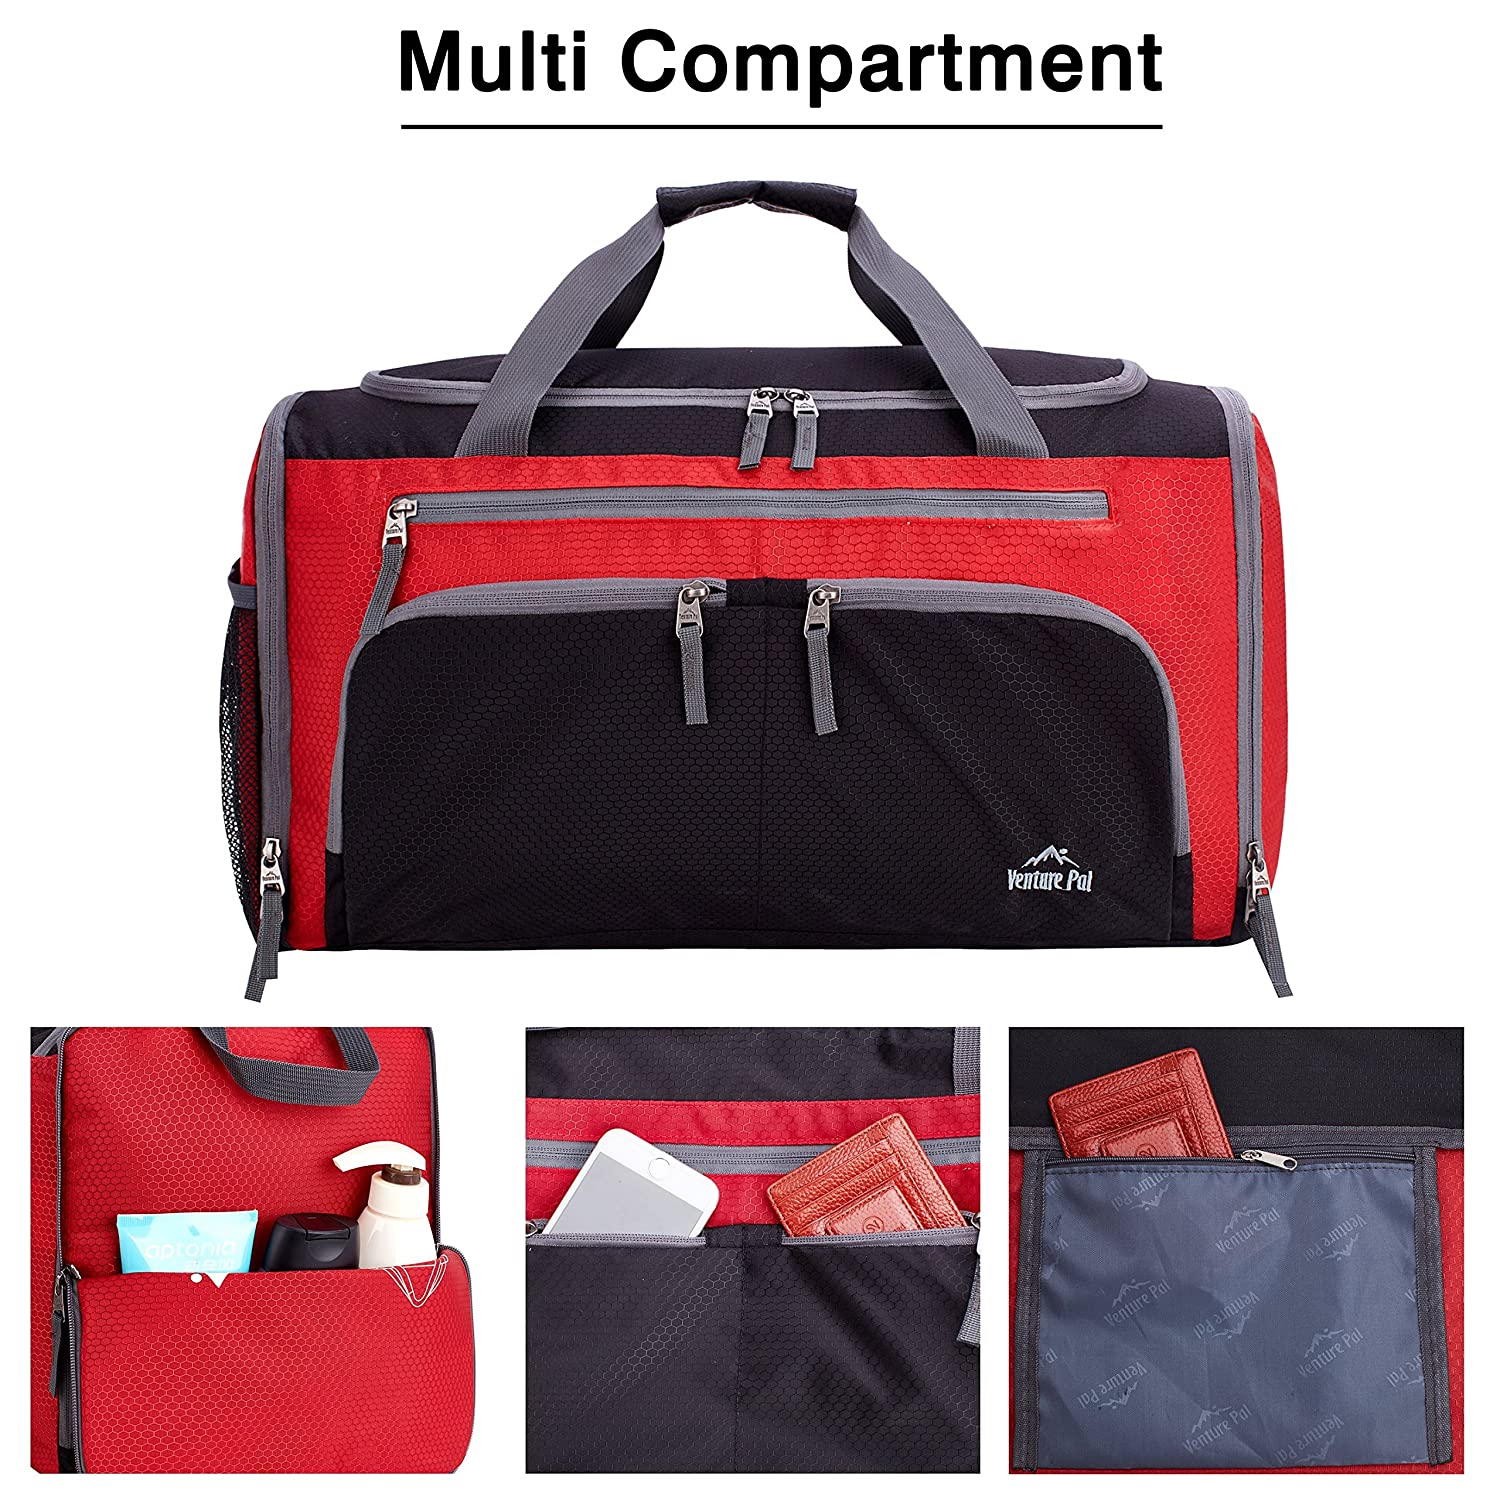 Venture Pal Packable Sports Gym Bag with Wet Pocket    Shoes Compartment  Travel Duffel Bag for ... 0c1cb99ff2476